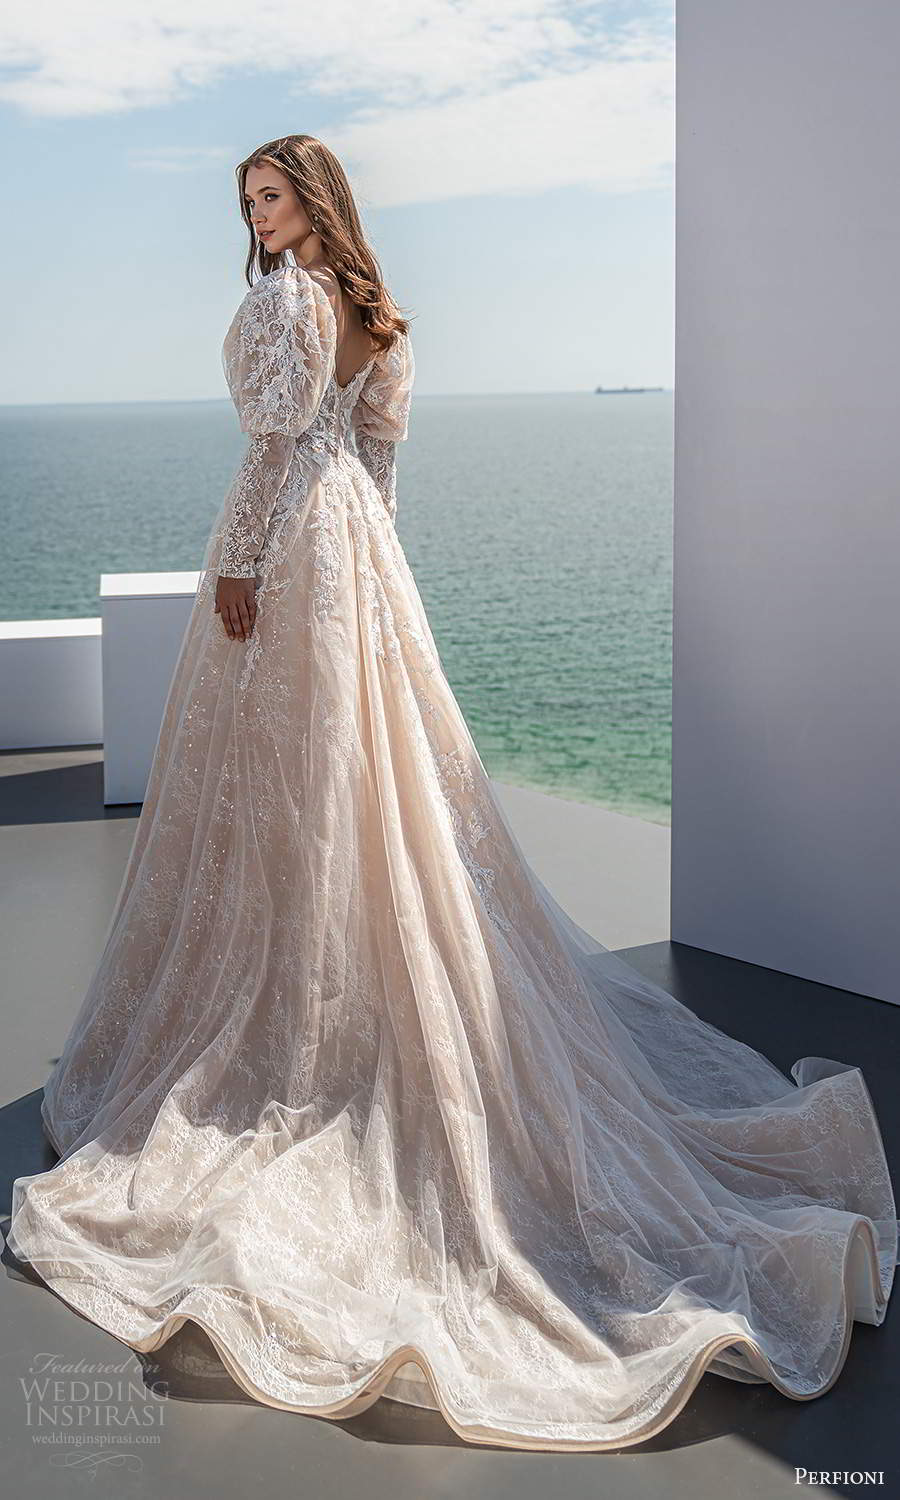 perfioni 2021 bridal long puff sleeve sweetheart neckline fully embellished a line ball gown wedding dress chapel train blush (11) bv